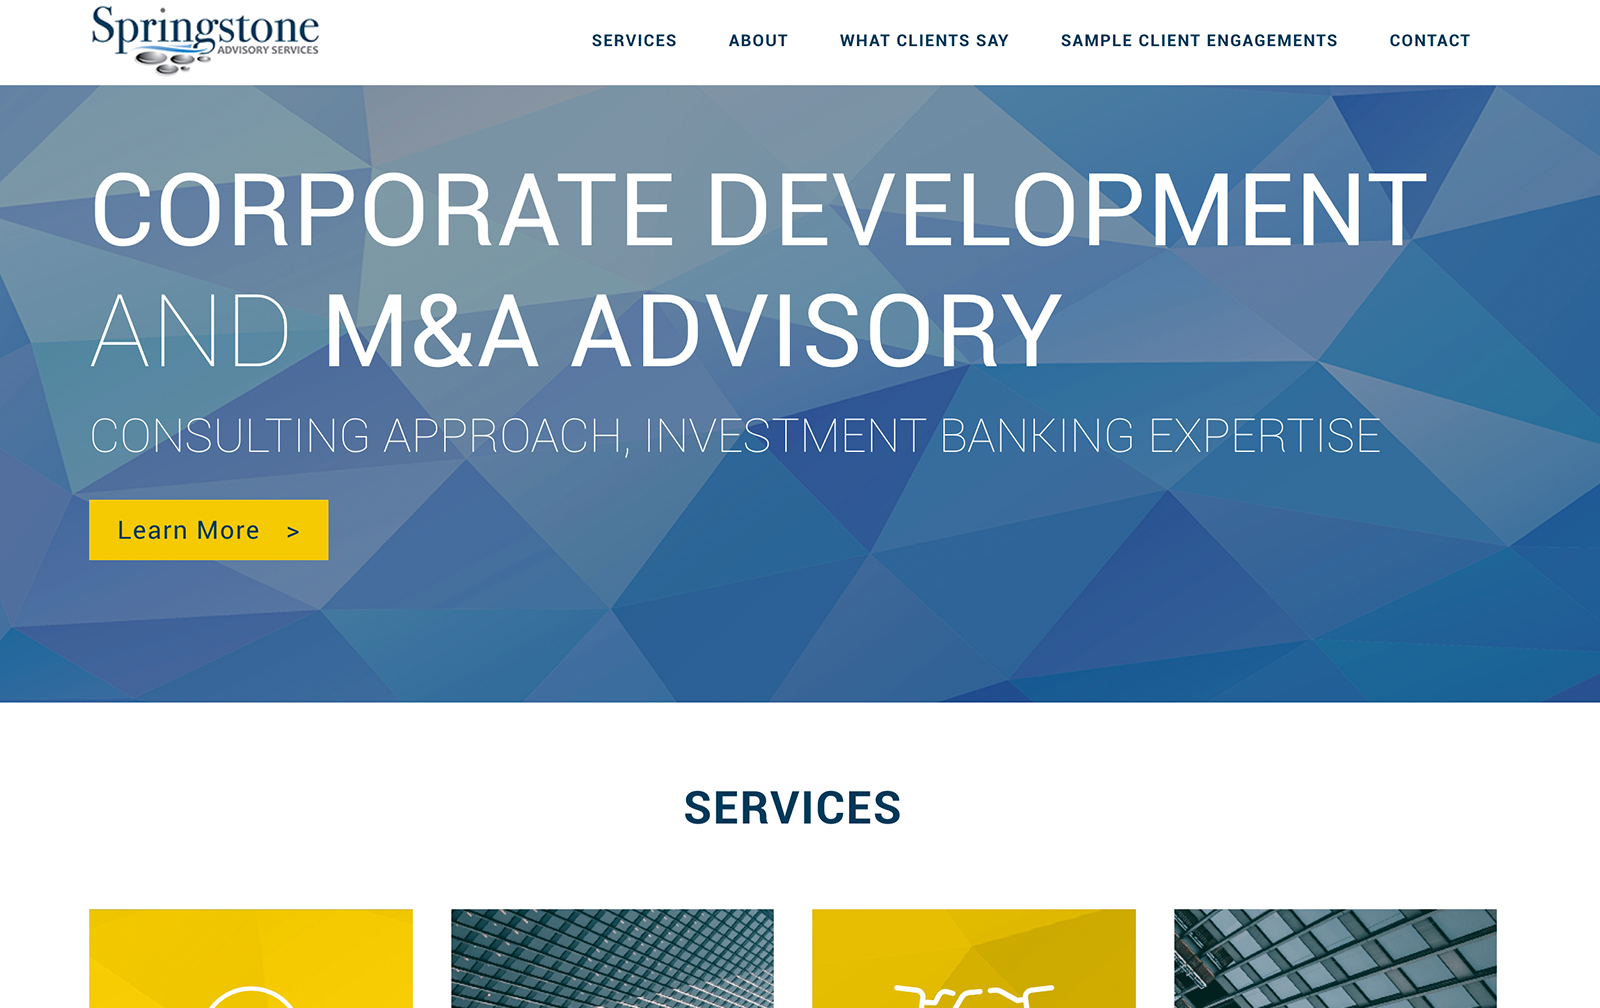 springstone advisory partners website desktop